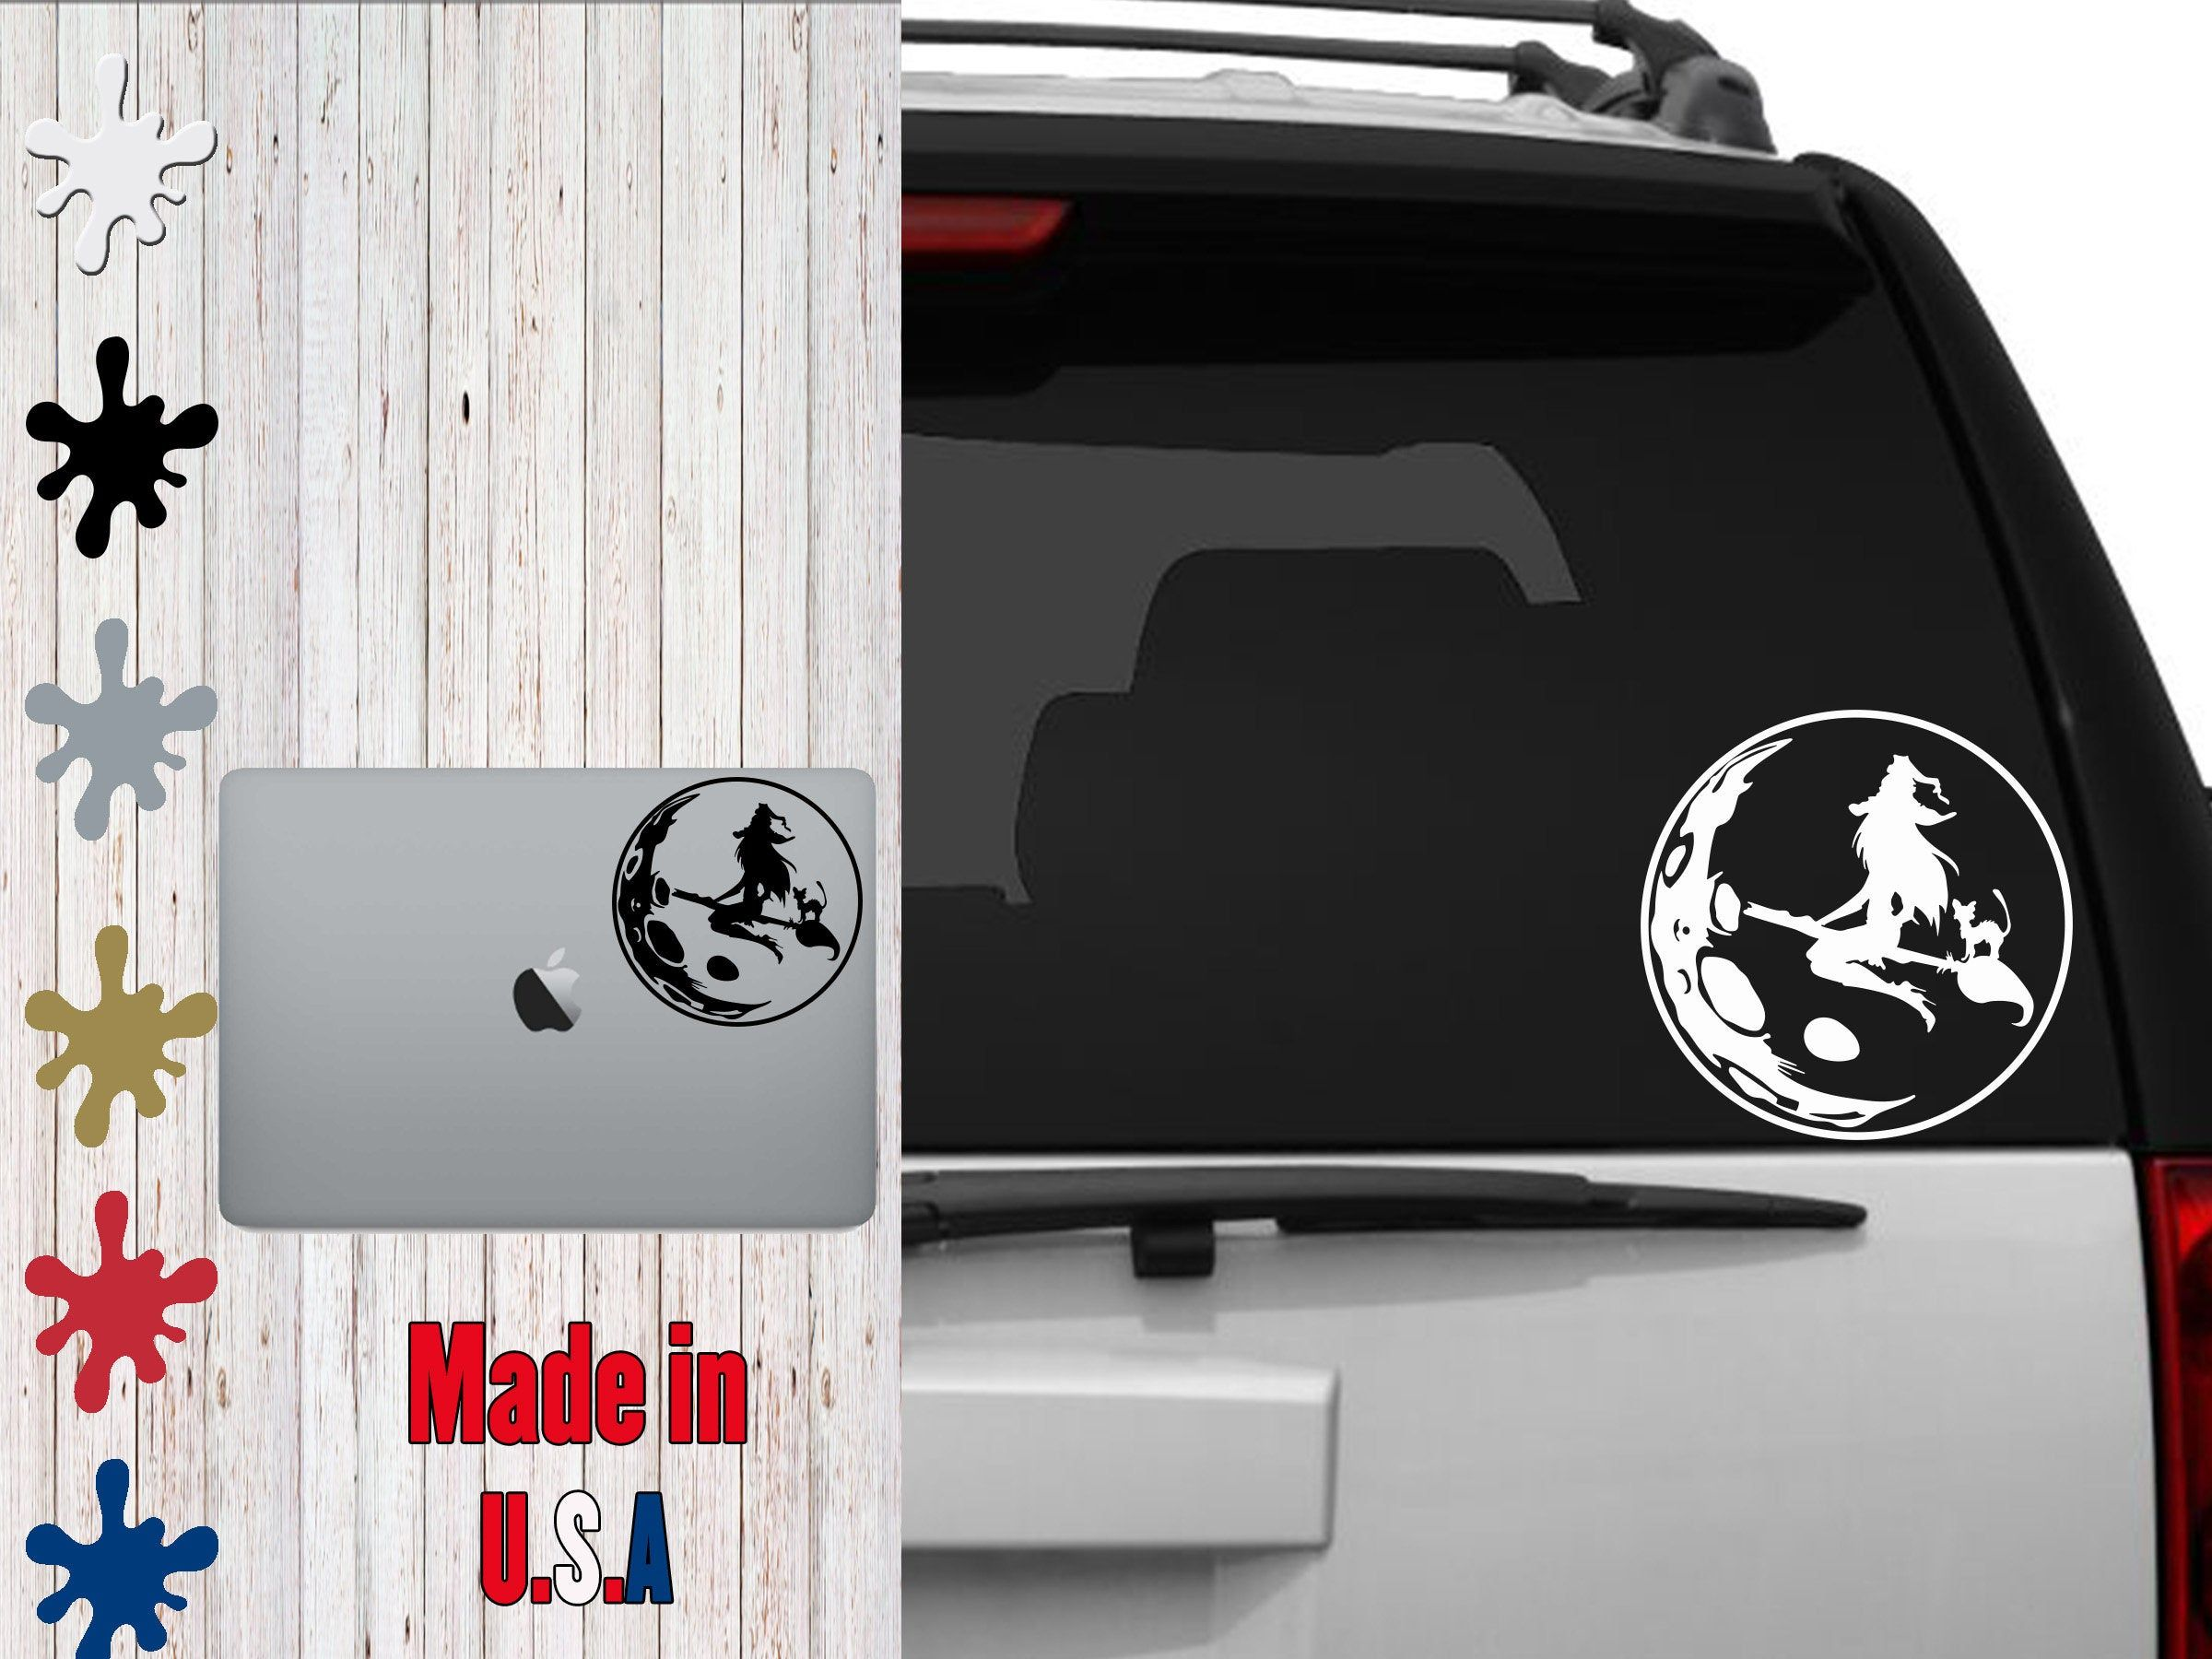 Moon Which Decal Choose Your Size Car Decal Laptop Decal By Veiledtrove On Etsy Horror Scary Fright Trickortre Phone Decals Laptop Decal Tumbler Decal [ jpg ]